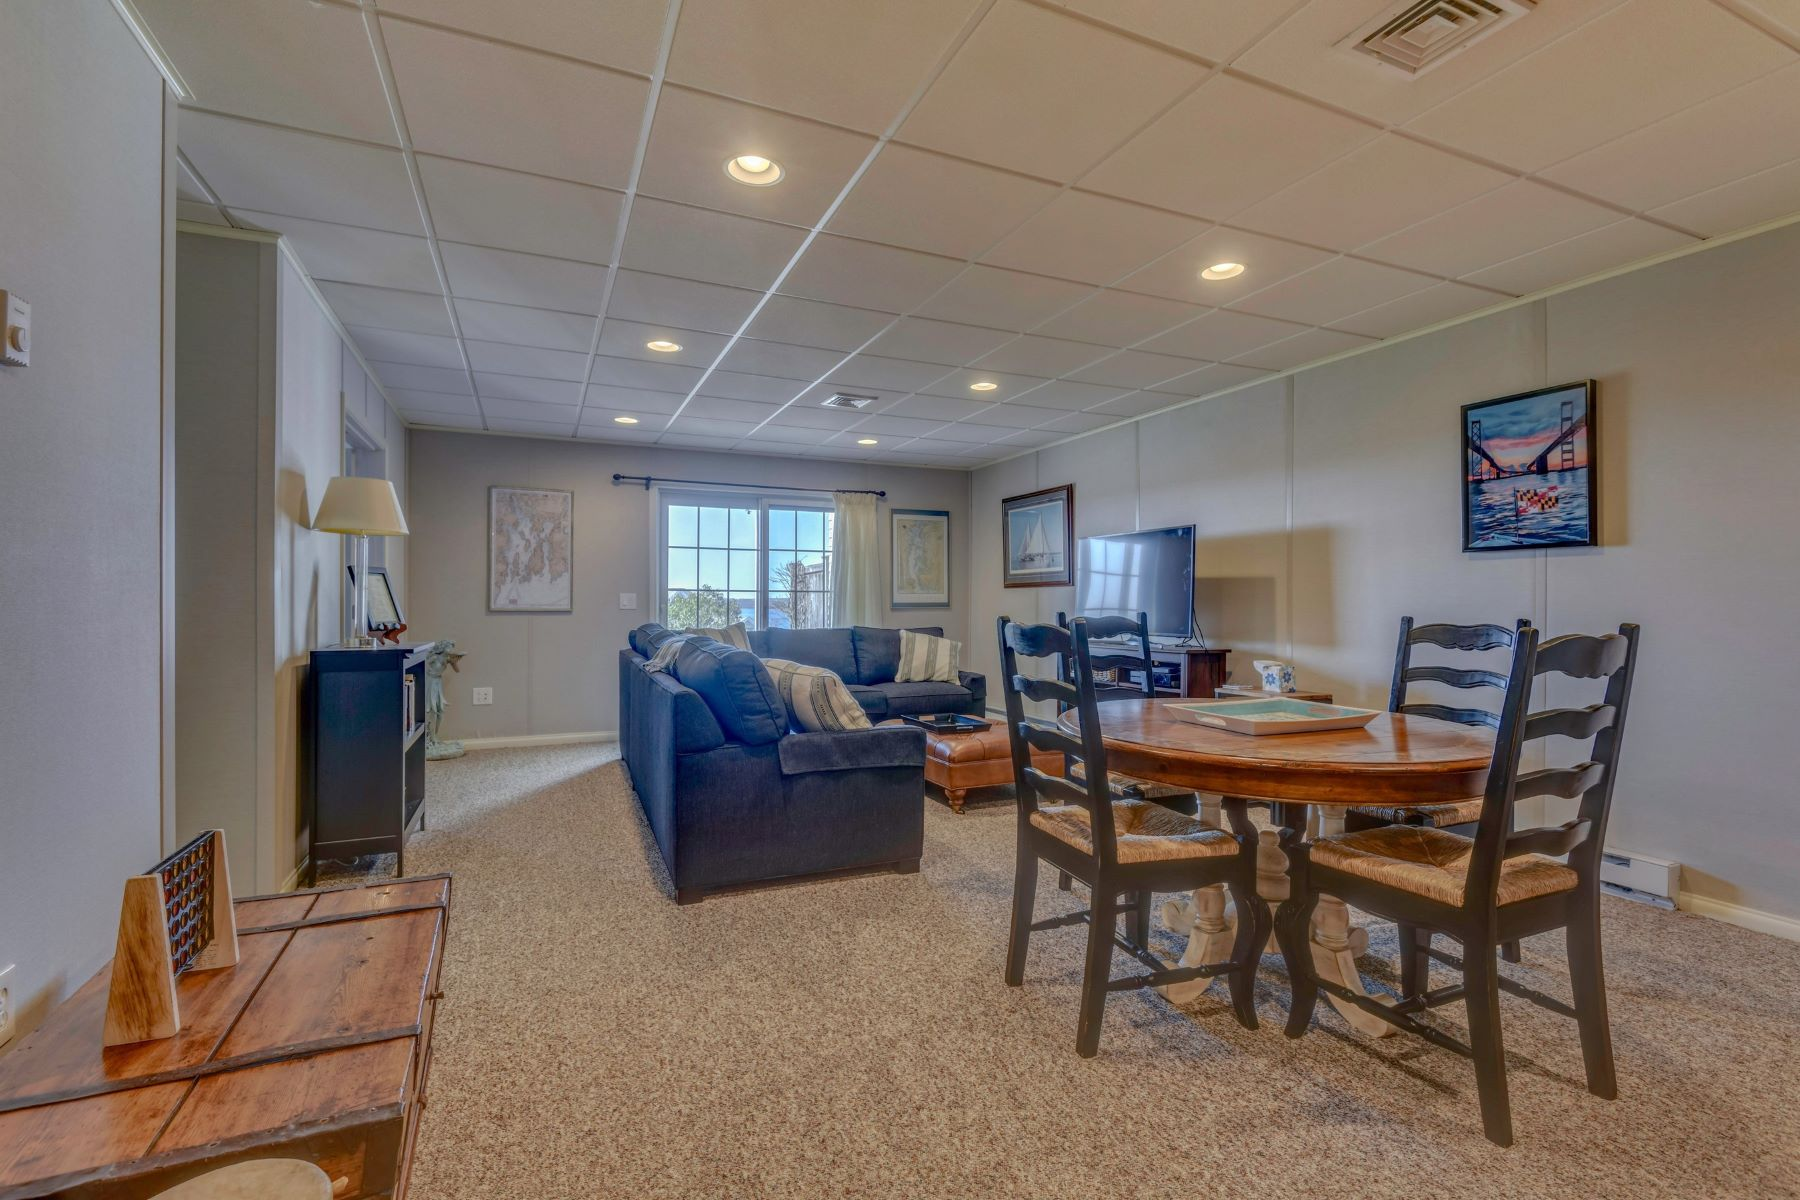 Additional photo for property listing at Sakonnet Style Townhome 23 Cutter Lane Tiverton, Rhode Island 02878 United States